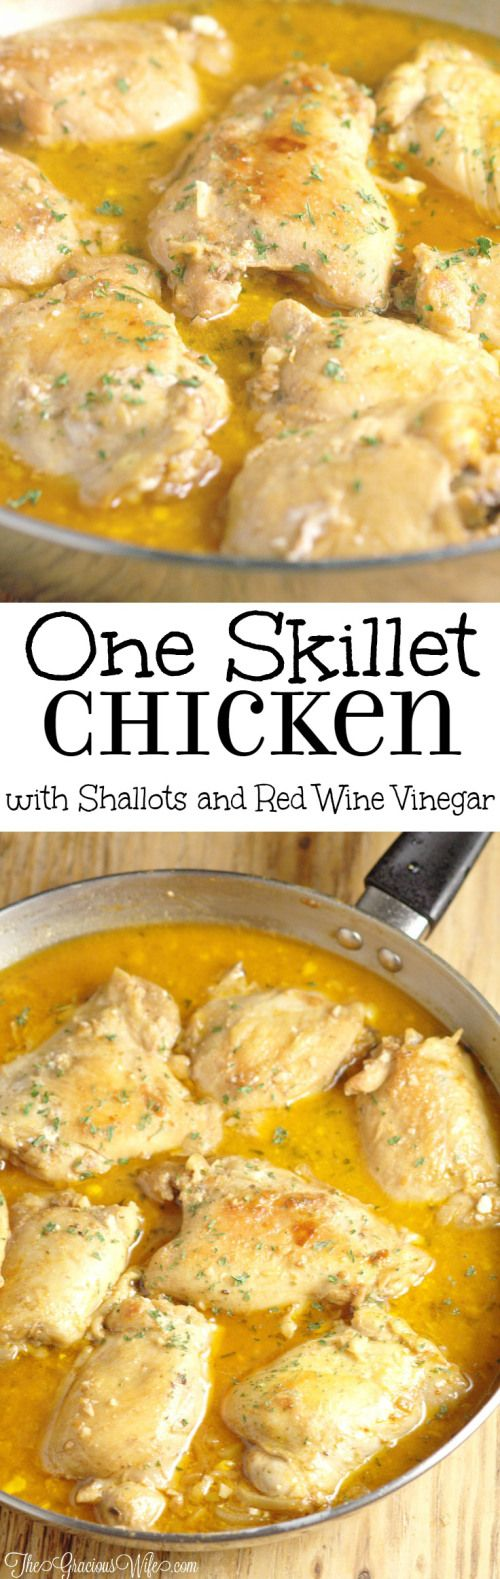 Skillet Chicken Thighs with Shallots in Red Wine Vinegar Sauce is a quick and easy dinner recipe idea that can be made in one pan in 30 minutes but is delicious and elegant enough for company and entertaining. I love the creamy sauce!